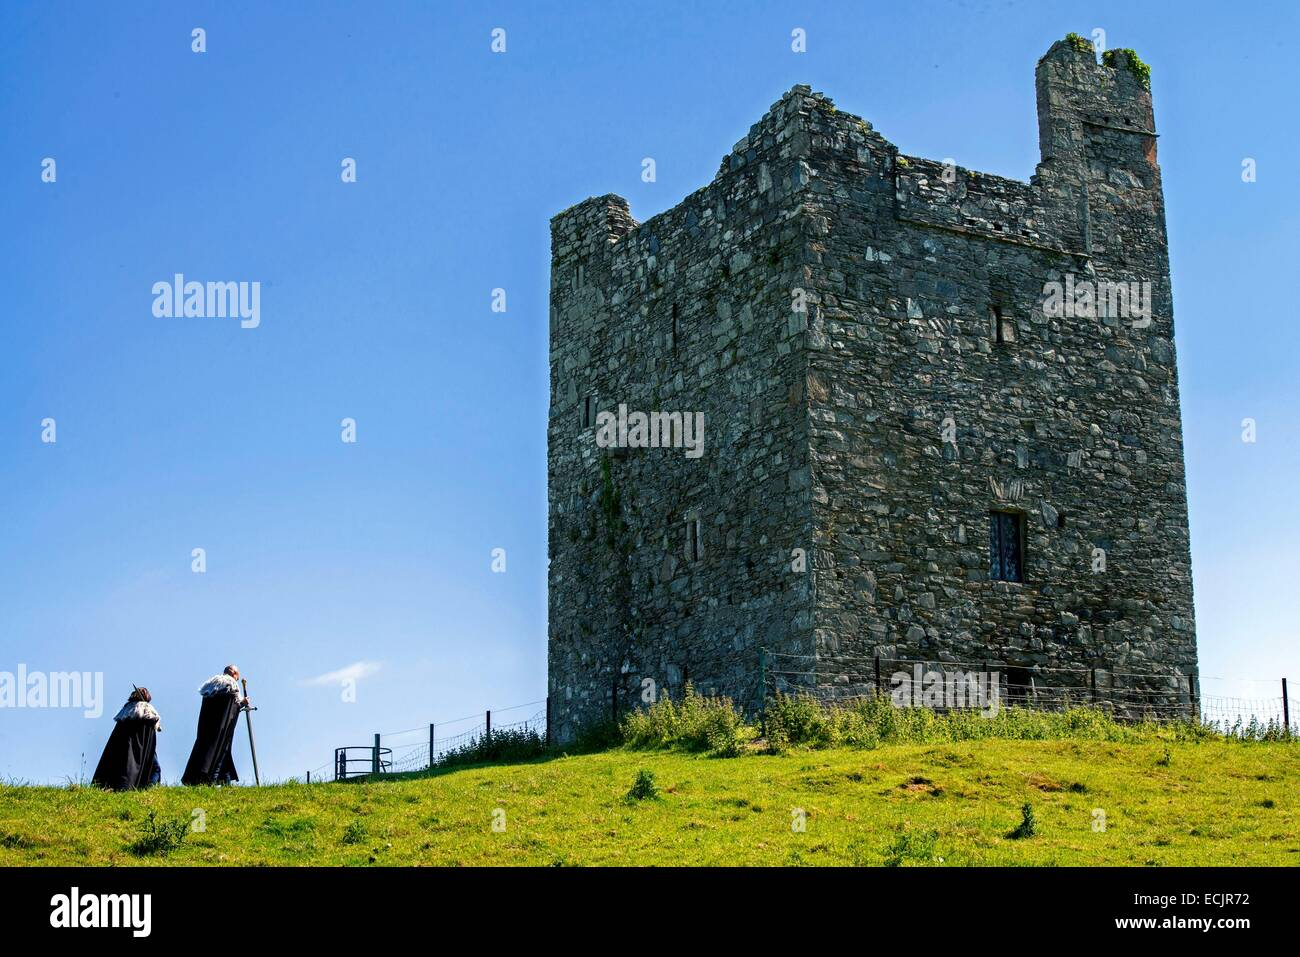 United Kingdom, Northern Ireland, County Down, Strangford, Audley's Castle, Audley's field, a backdrop for - Stock Image